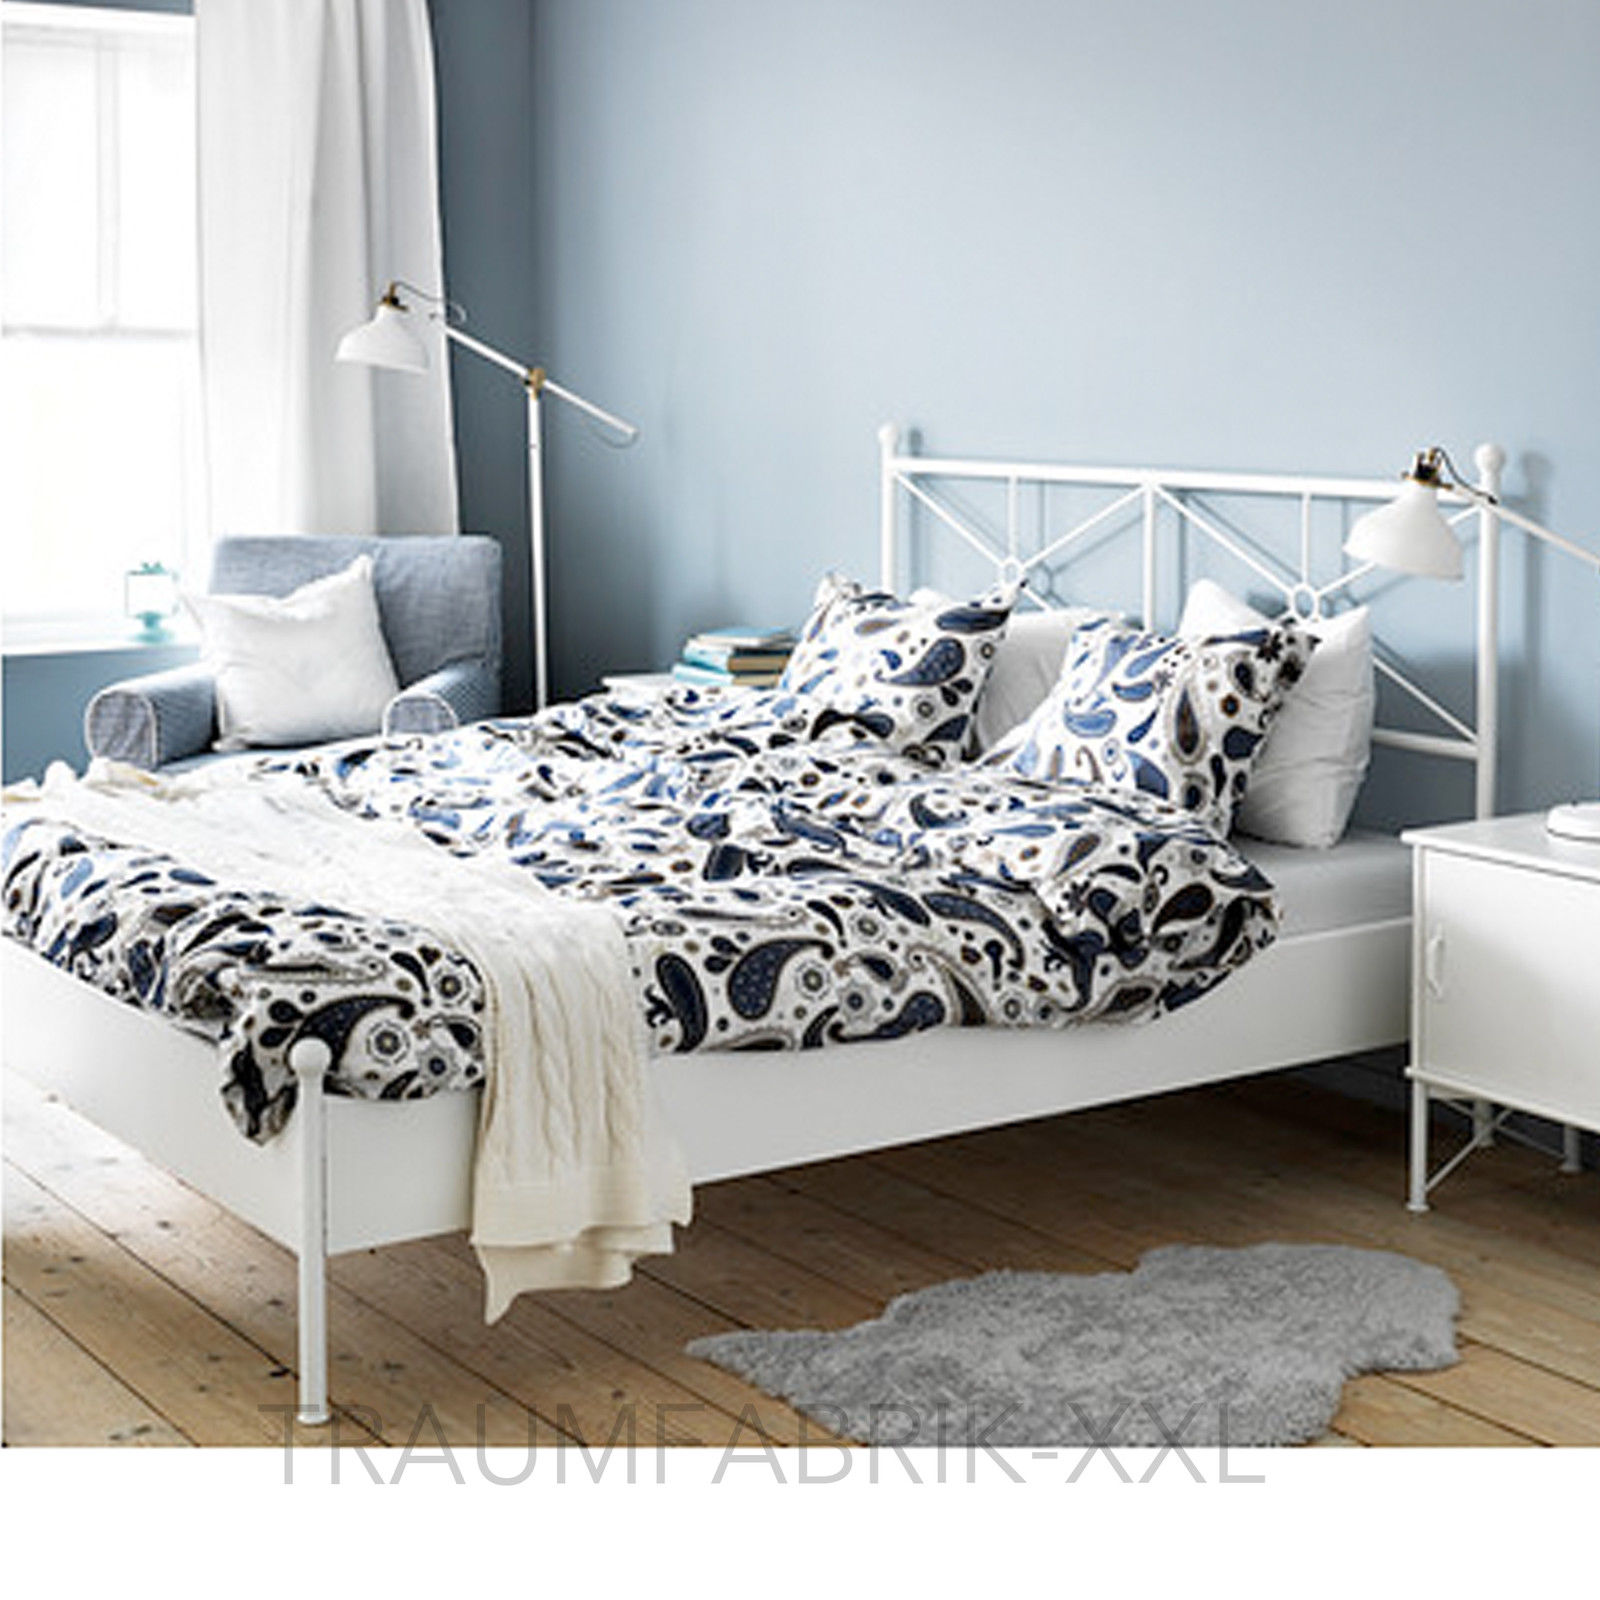 ikea bettw sche bettw scheset 3tlg blau bettw schegarnitur. Black Bedroom Furniture Sets. Home Design Ideas